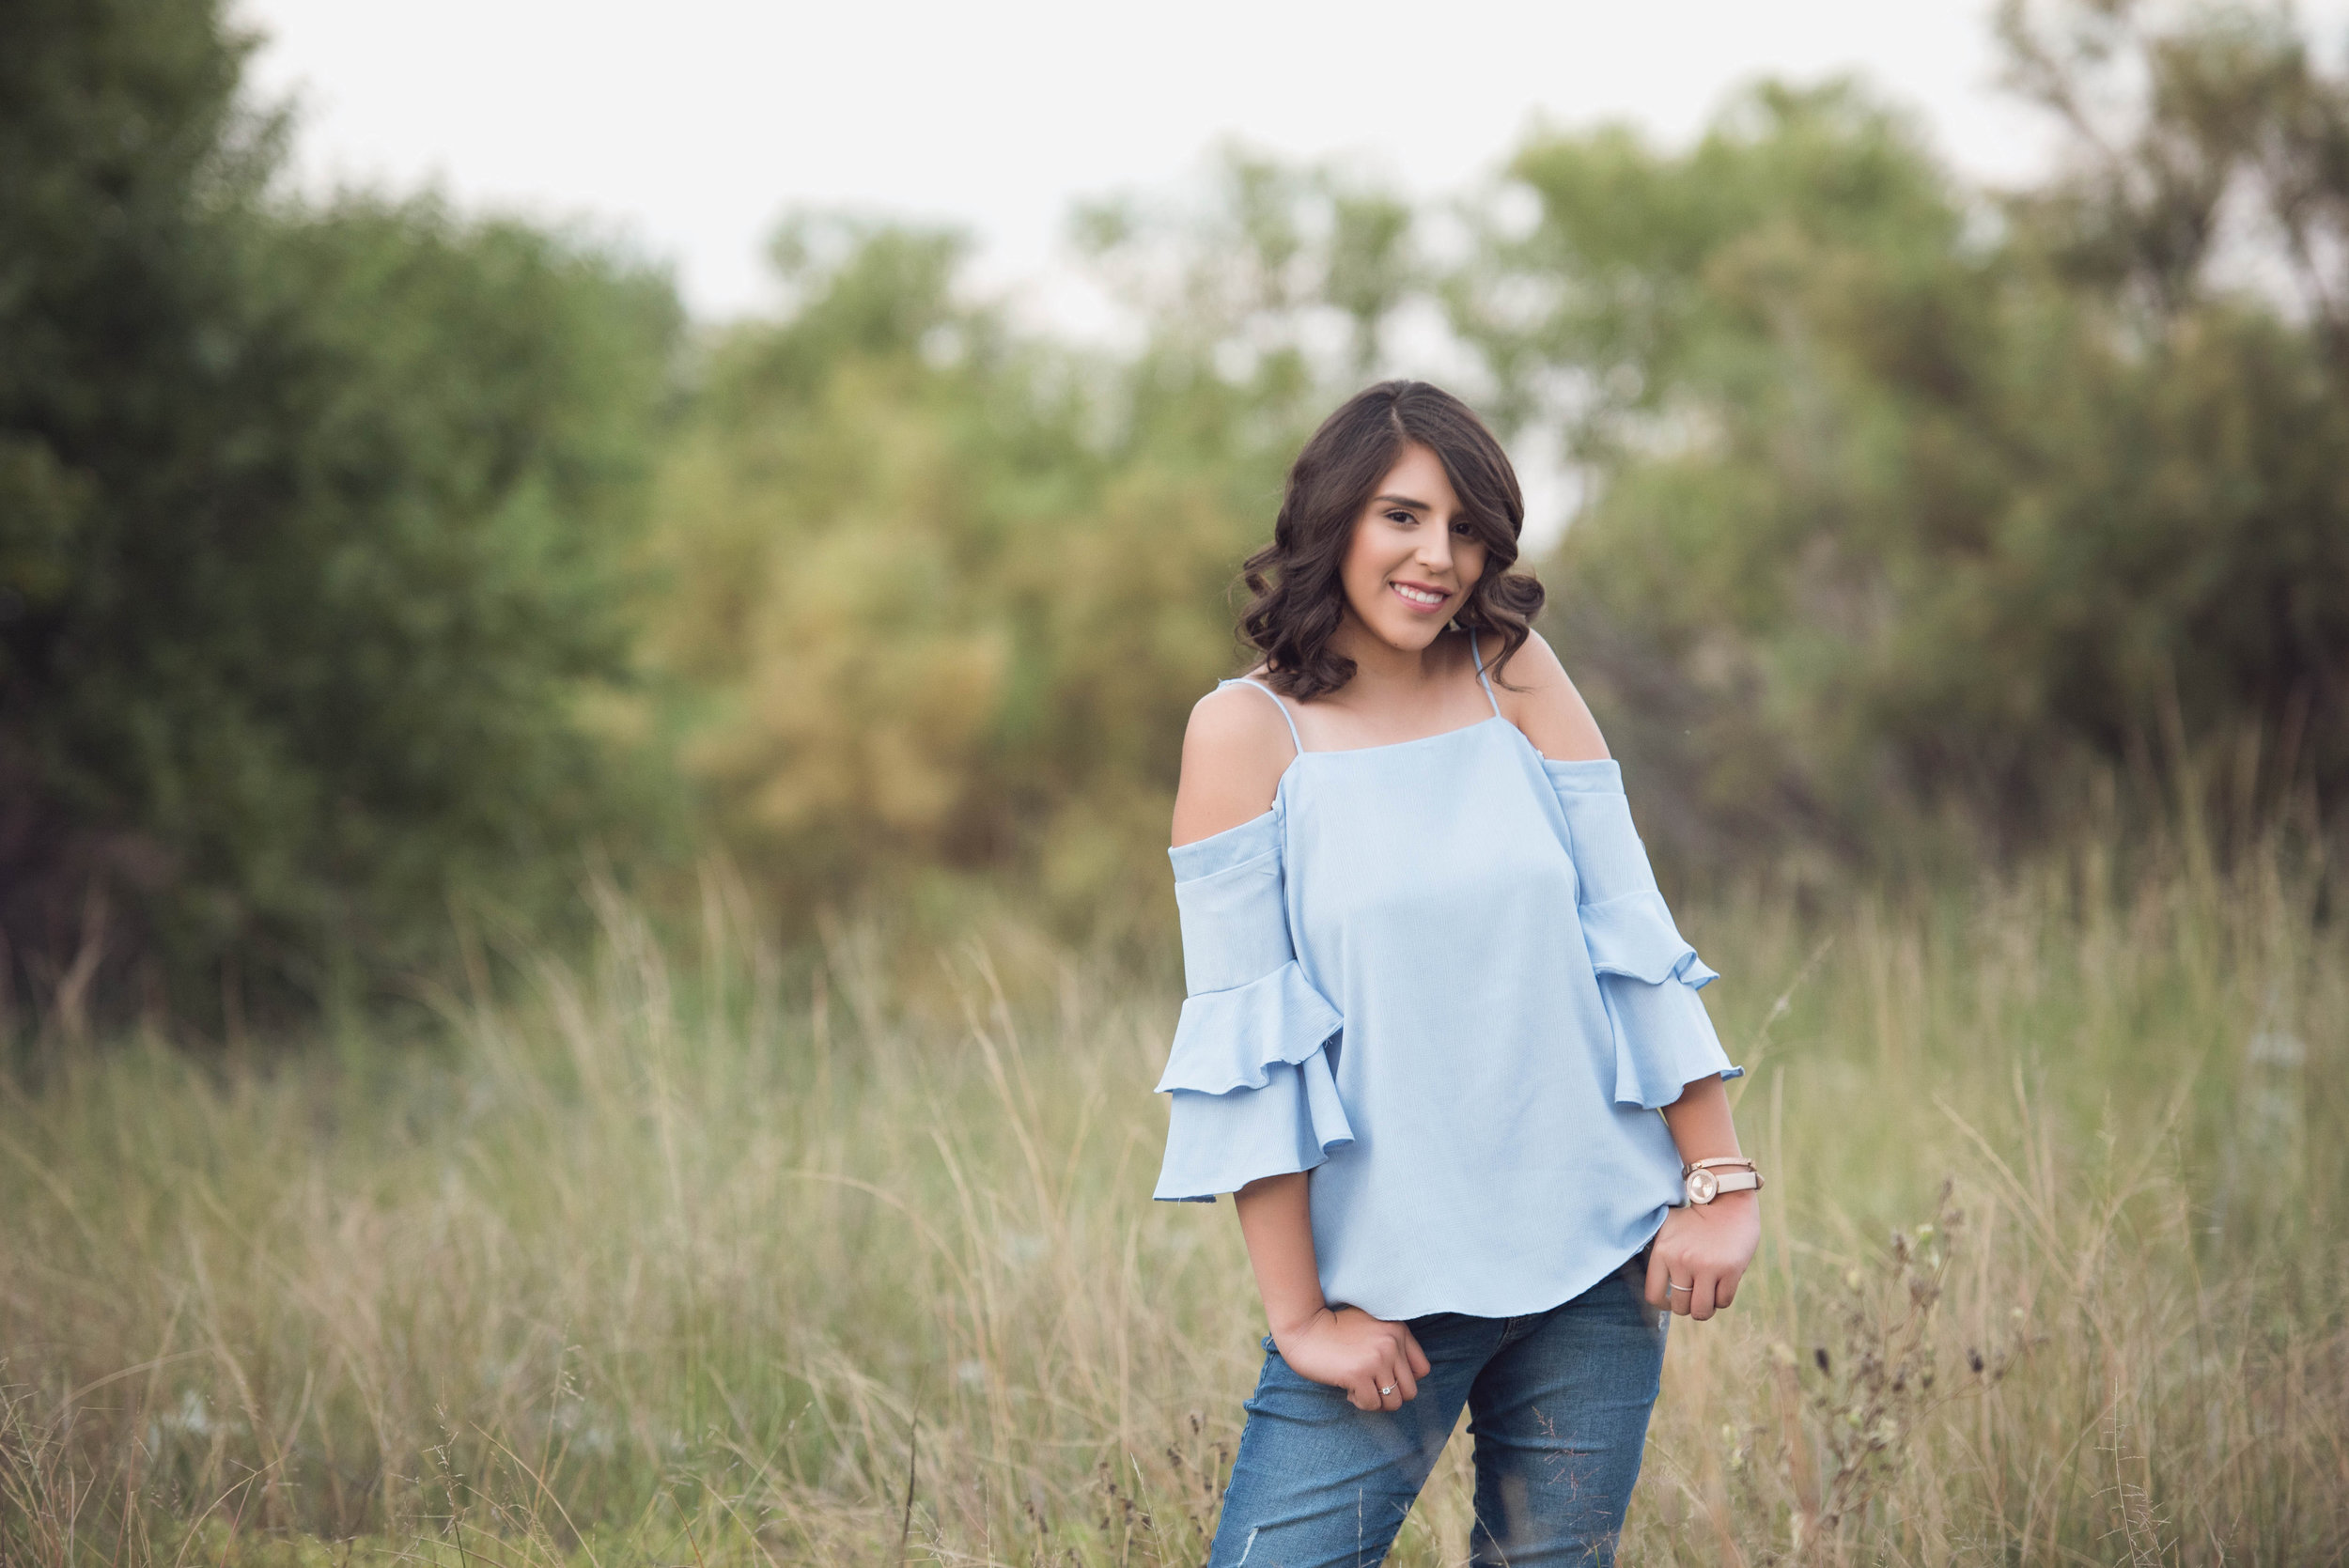 southwest-kansas-senior-photography71.jpg